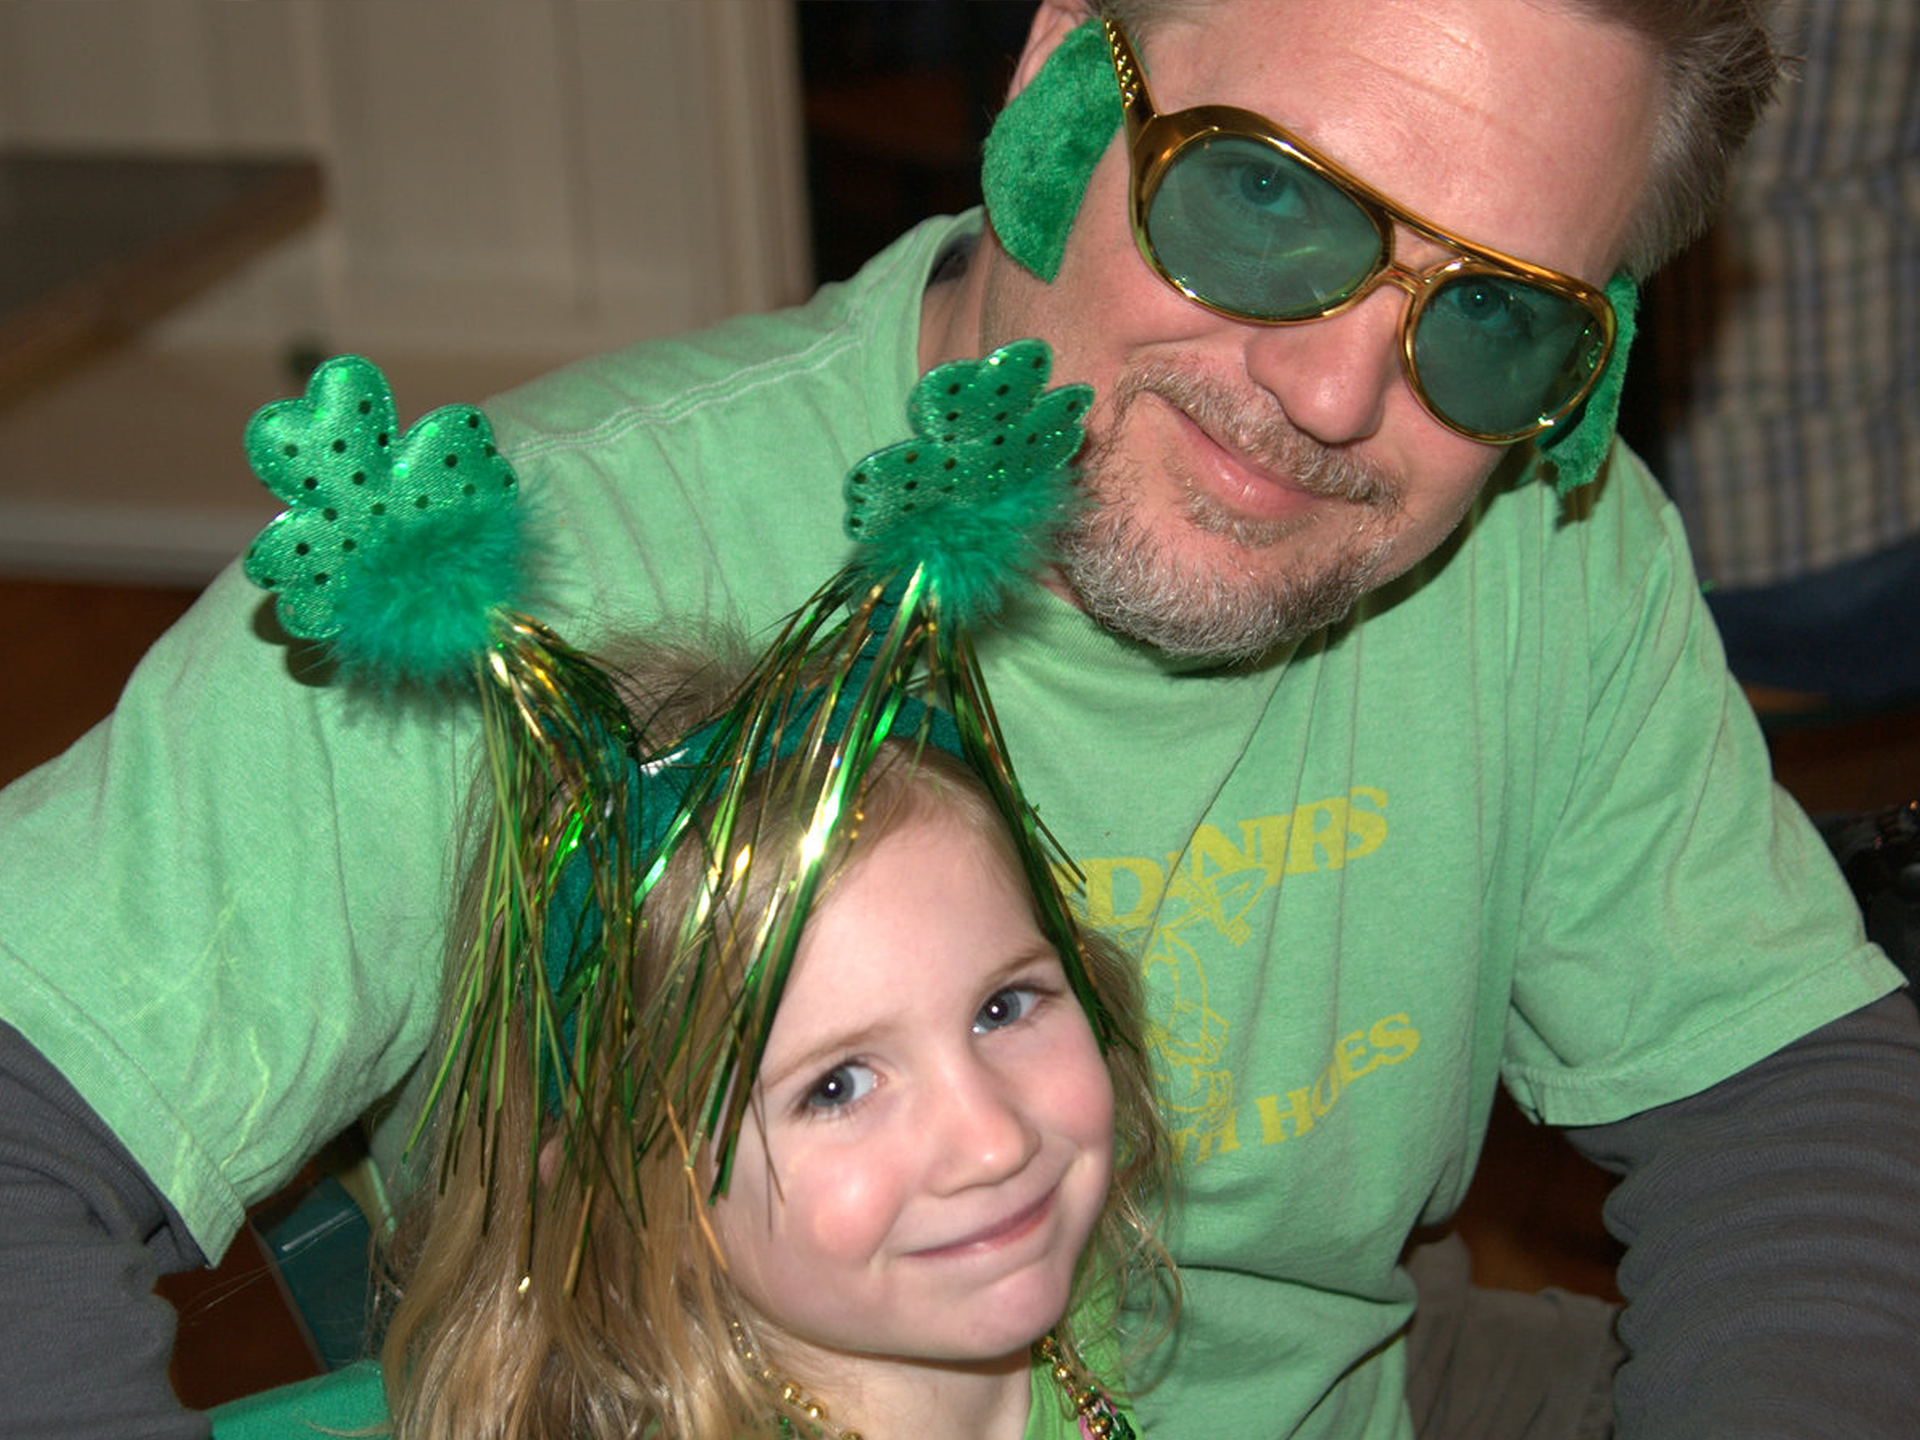 father and daughter on st.Patrick's day